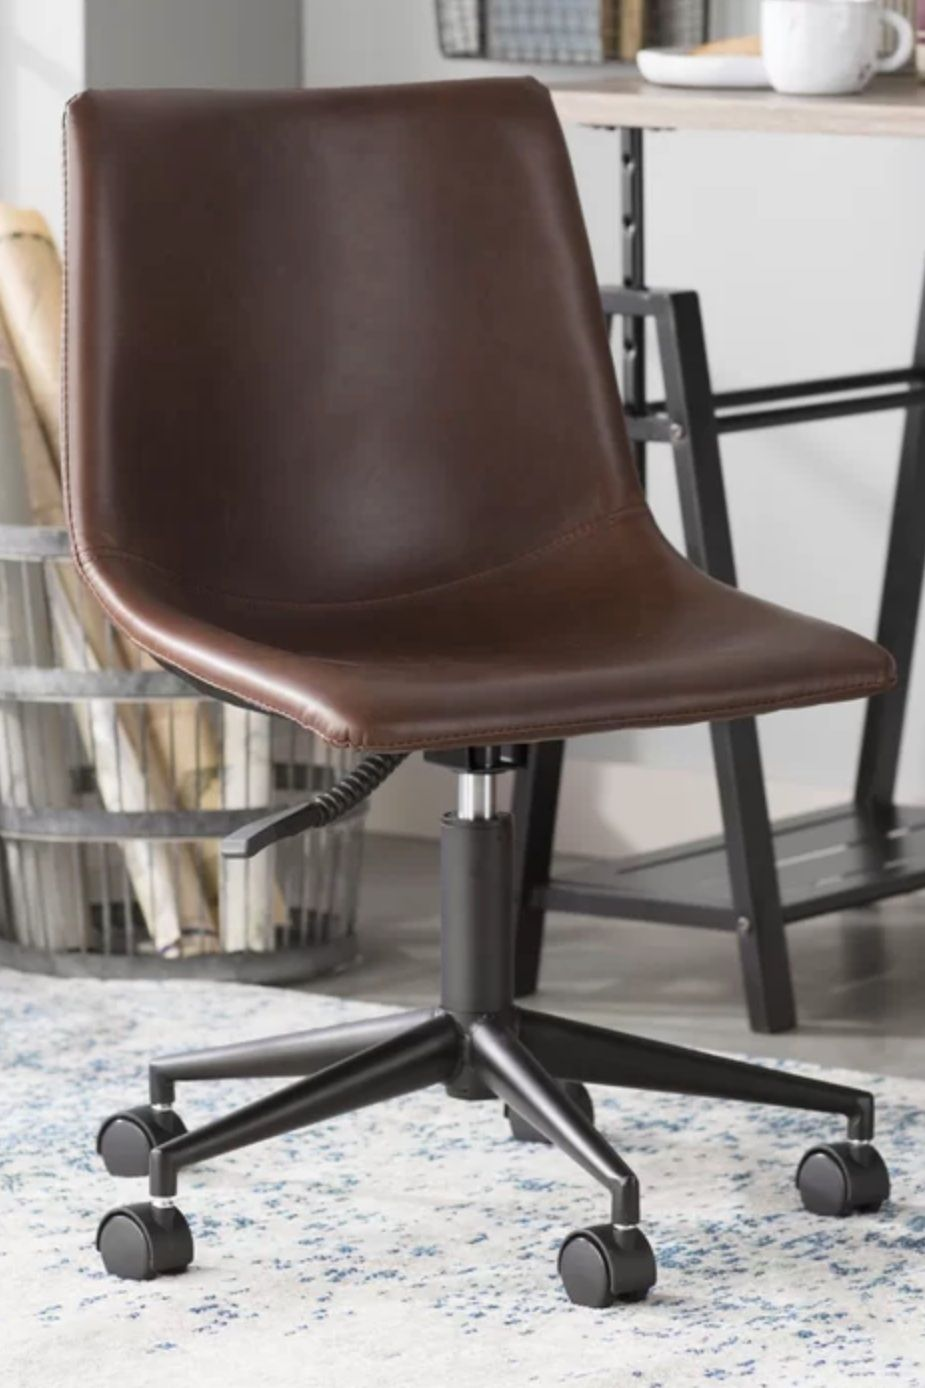 Super Modern Industrial Office Chair Roundup Home Is Where Spiritservingveterans Wood Chair Design Ideas Spiritservingveteransorg